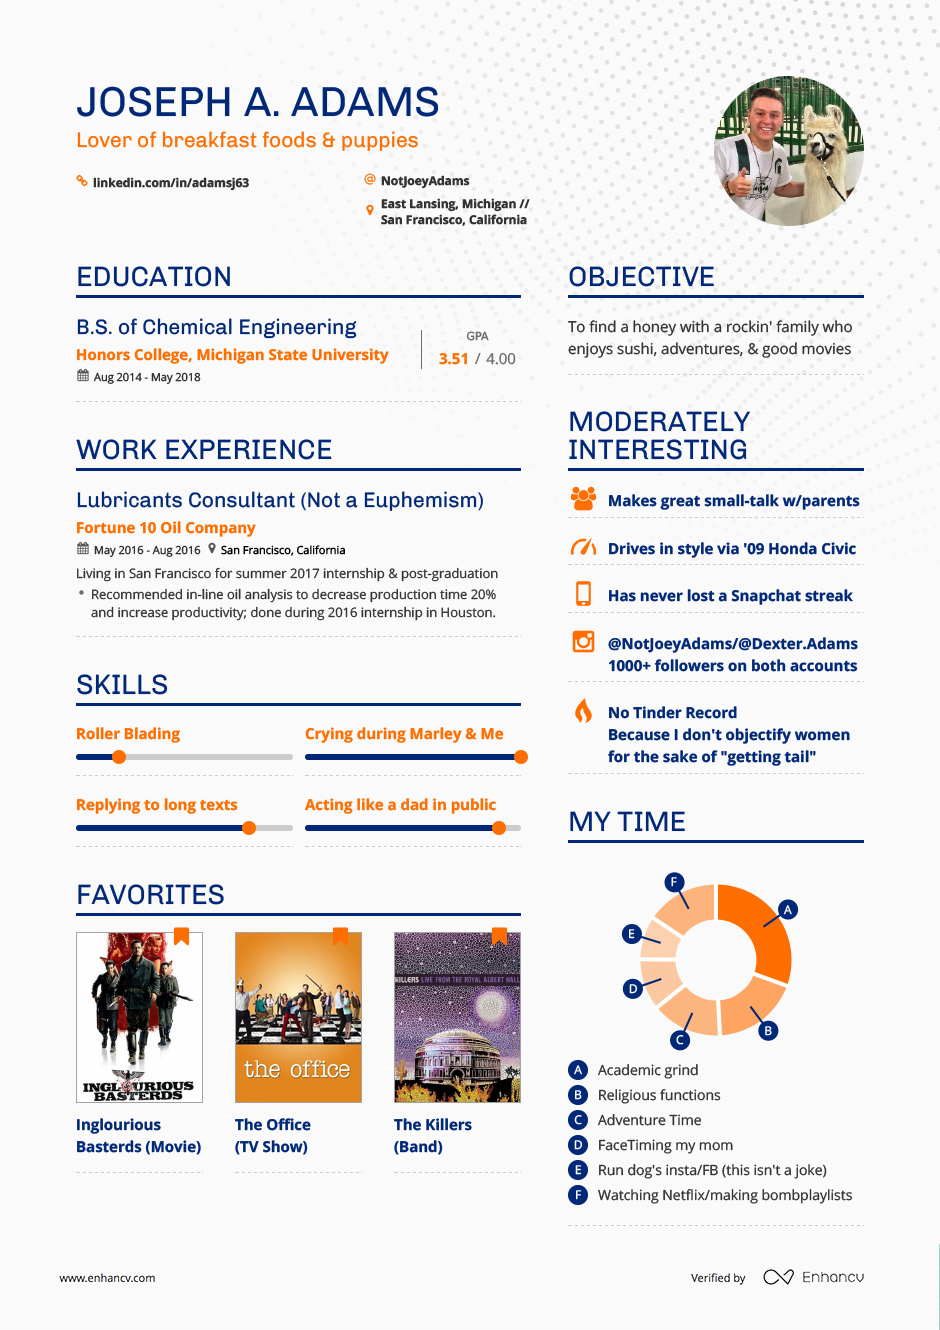 Comfortable 1 Page Proposal Template Tiny 1 Page Resume Format Download Flat 1 Page Resumes 1 Page Resumes Examples Youthful 1 Page Website Template Pink1.25 Button Template The Dating Resume A College Student Made With Enhancv